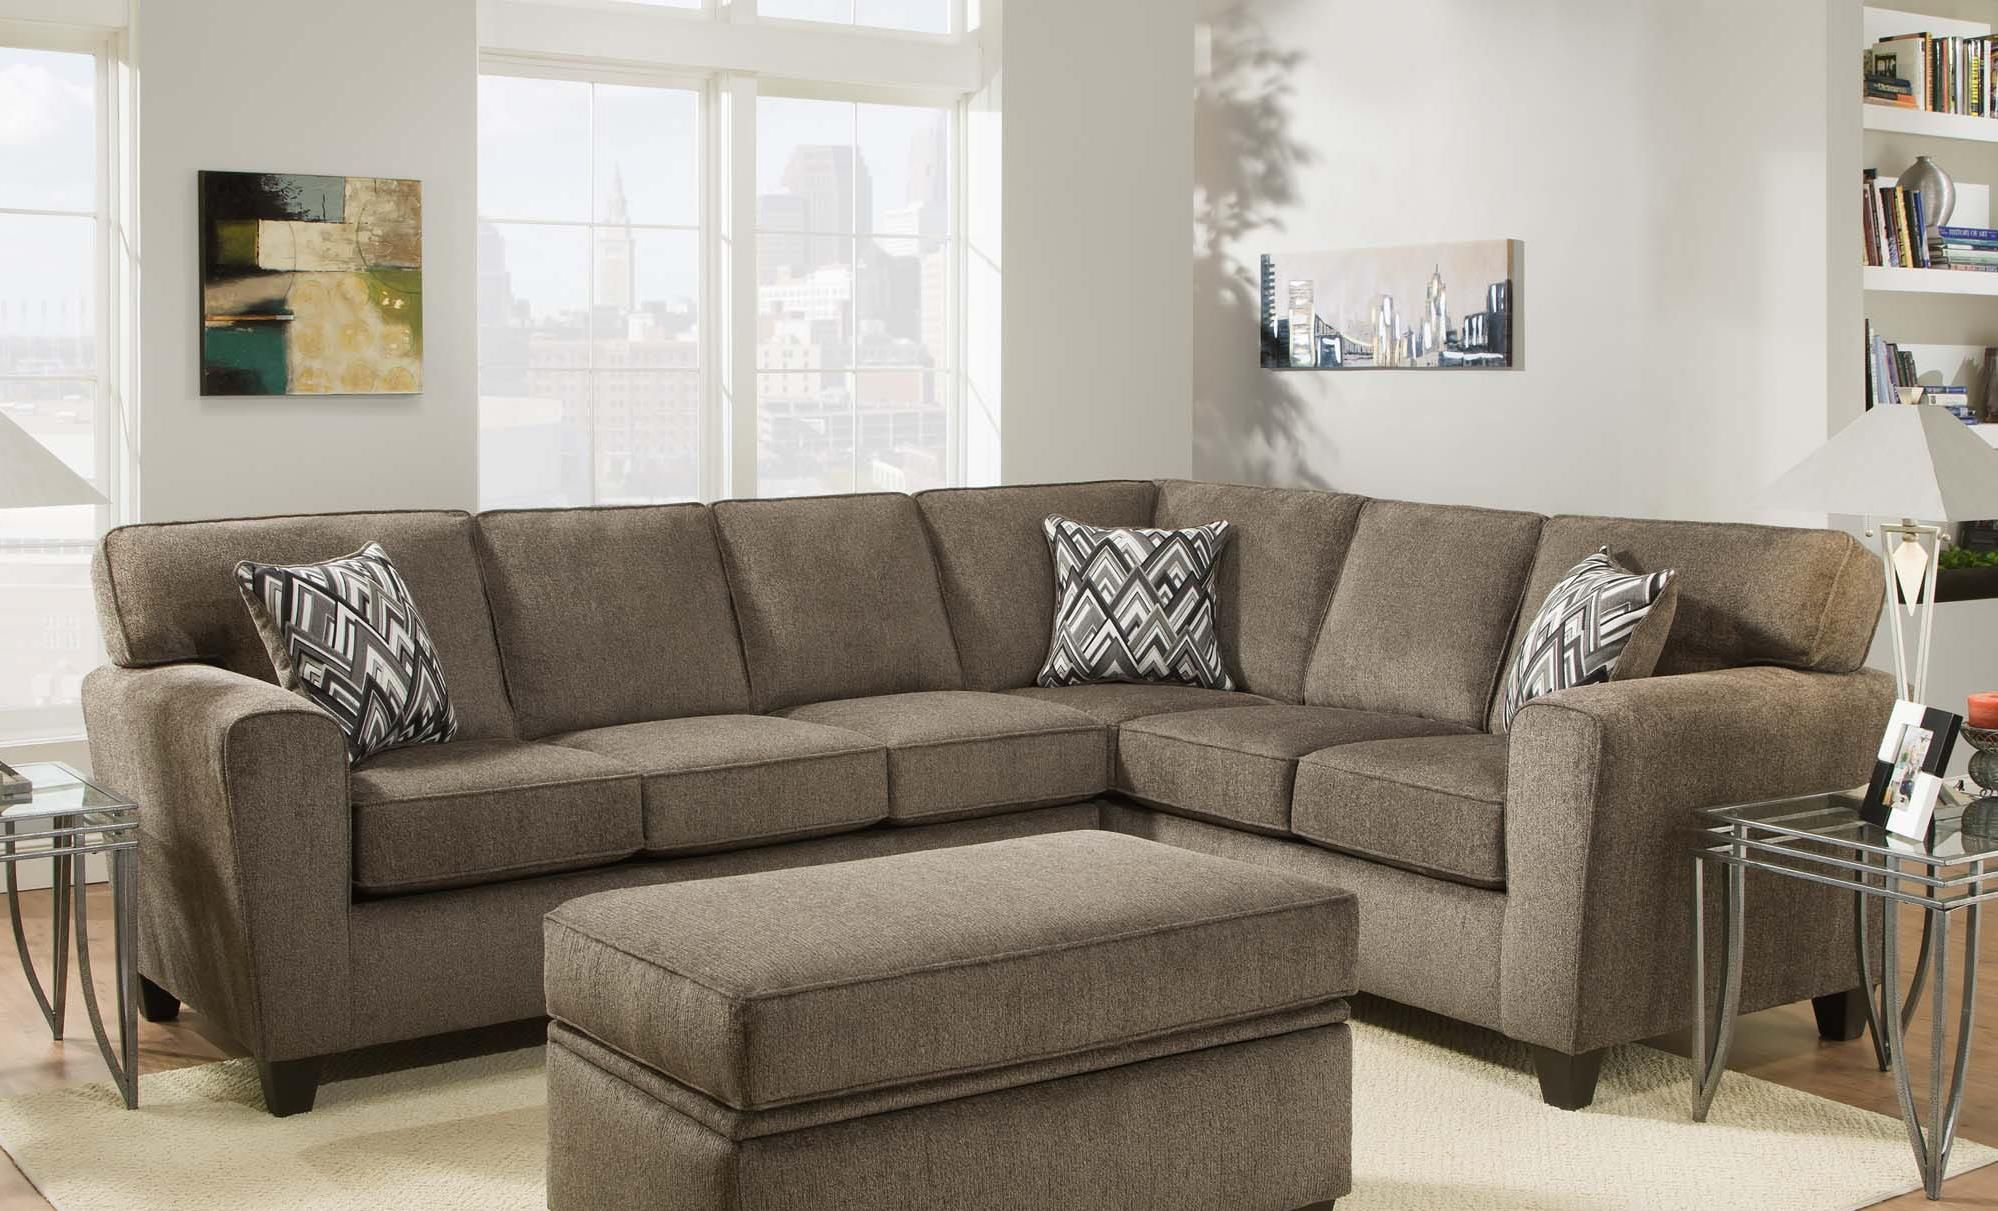 3100 5 Seat Sectional Sofa By Peak Living Sectional Sofa With